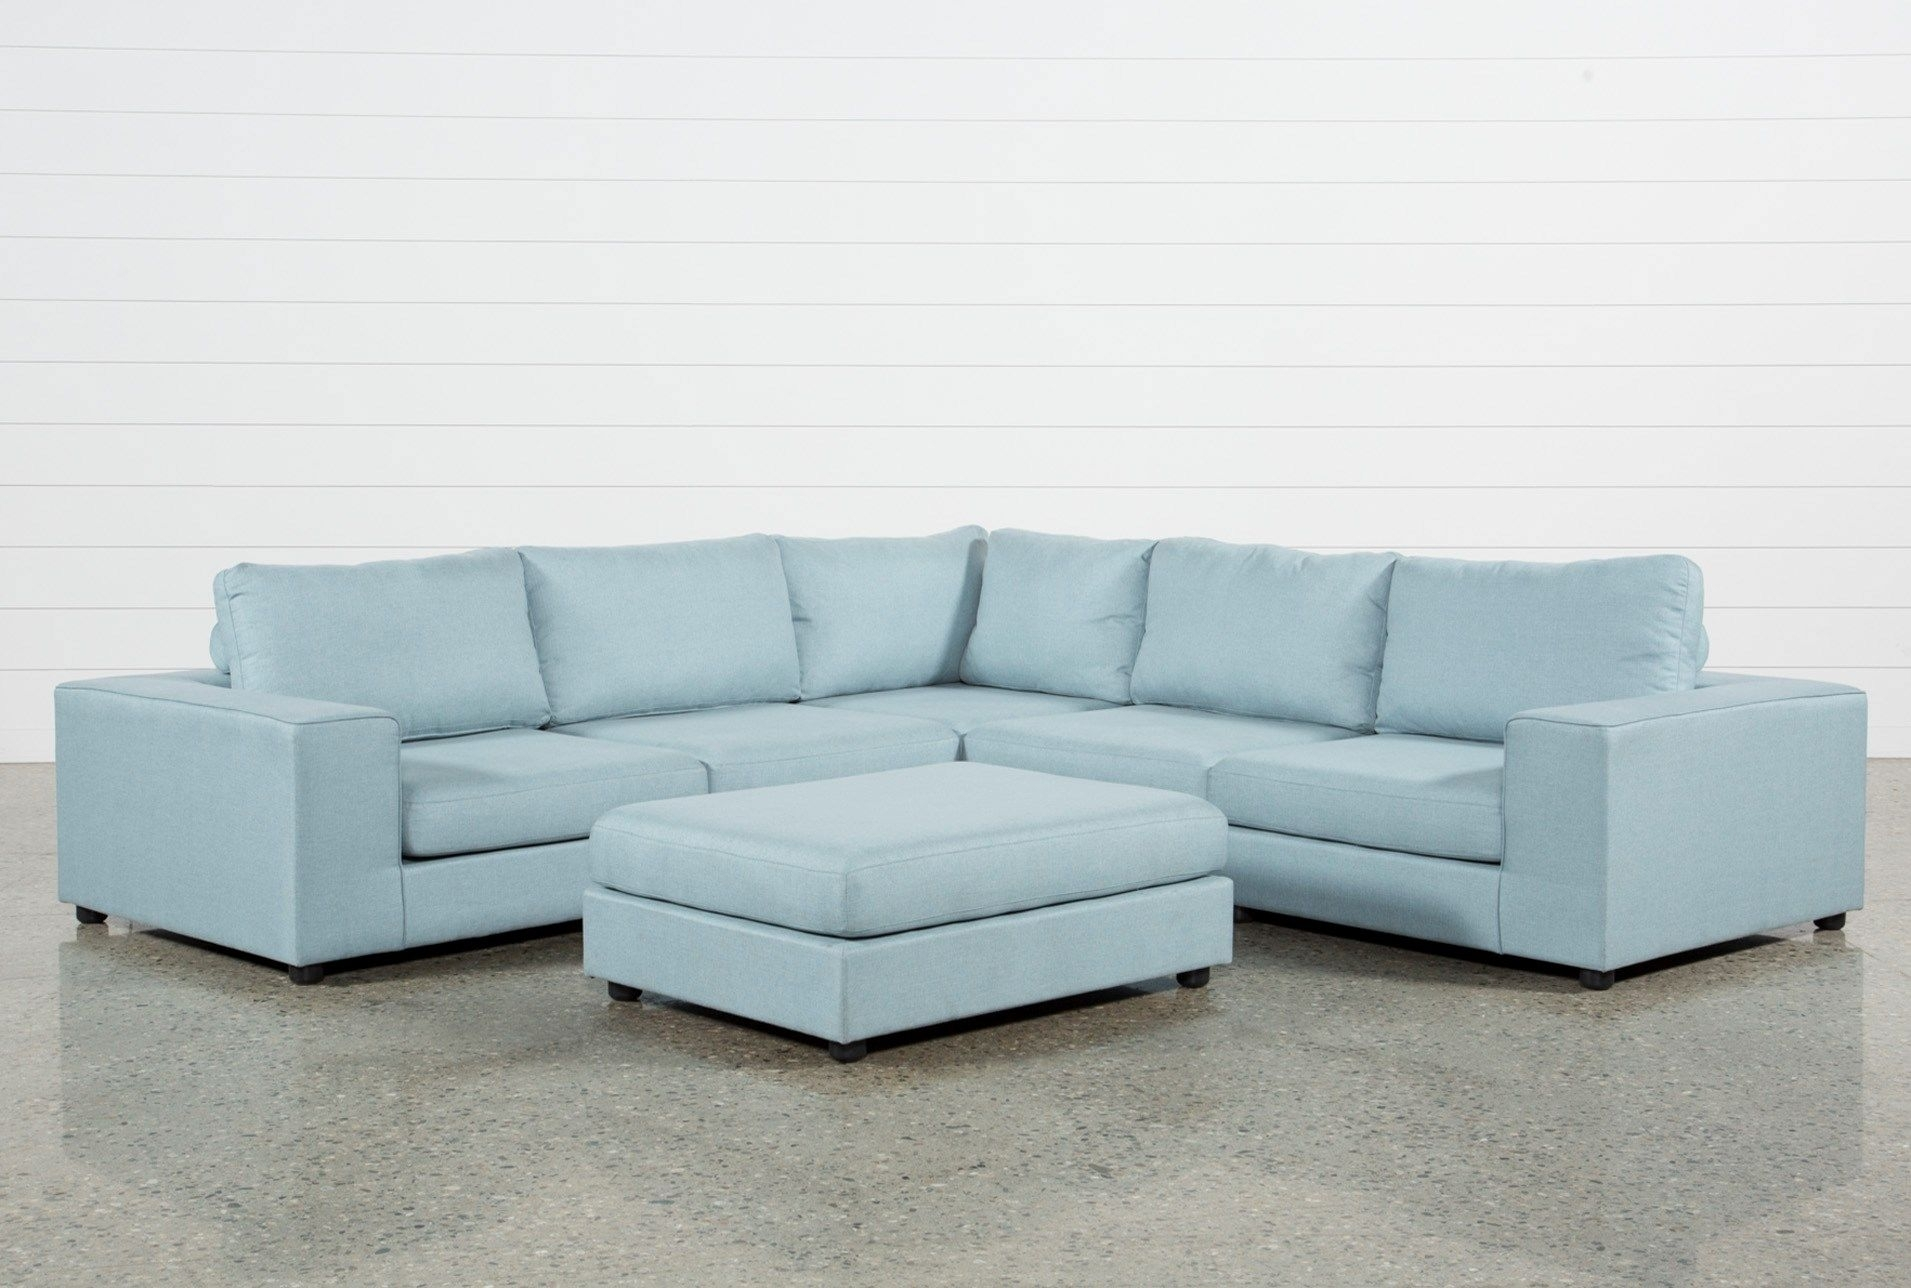 Josephine 2 Piece Sectional W/laf Sofa, Grey | Modular Design intended for Josephine 2 Piece Sectionals With Raf Sofa (Image 12 of 30)